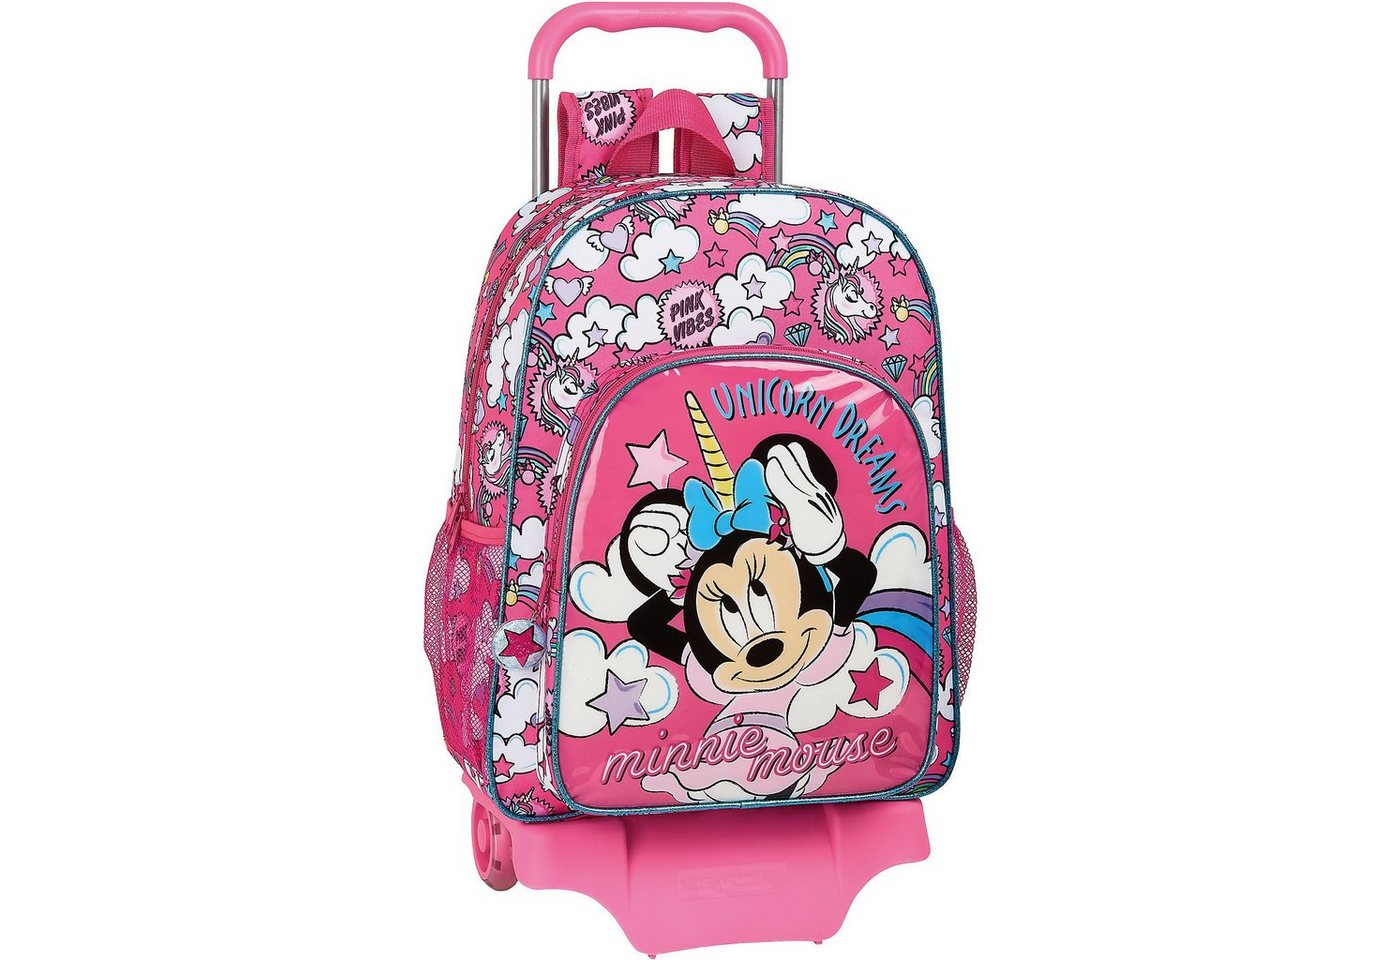 safta -  Rucksack mit Trolley Minnie Mouse Unicorn Dreams